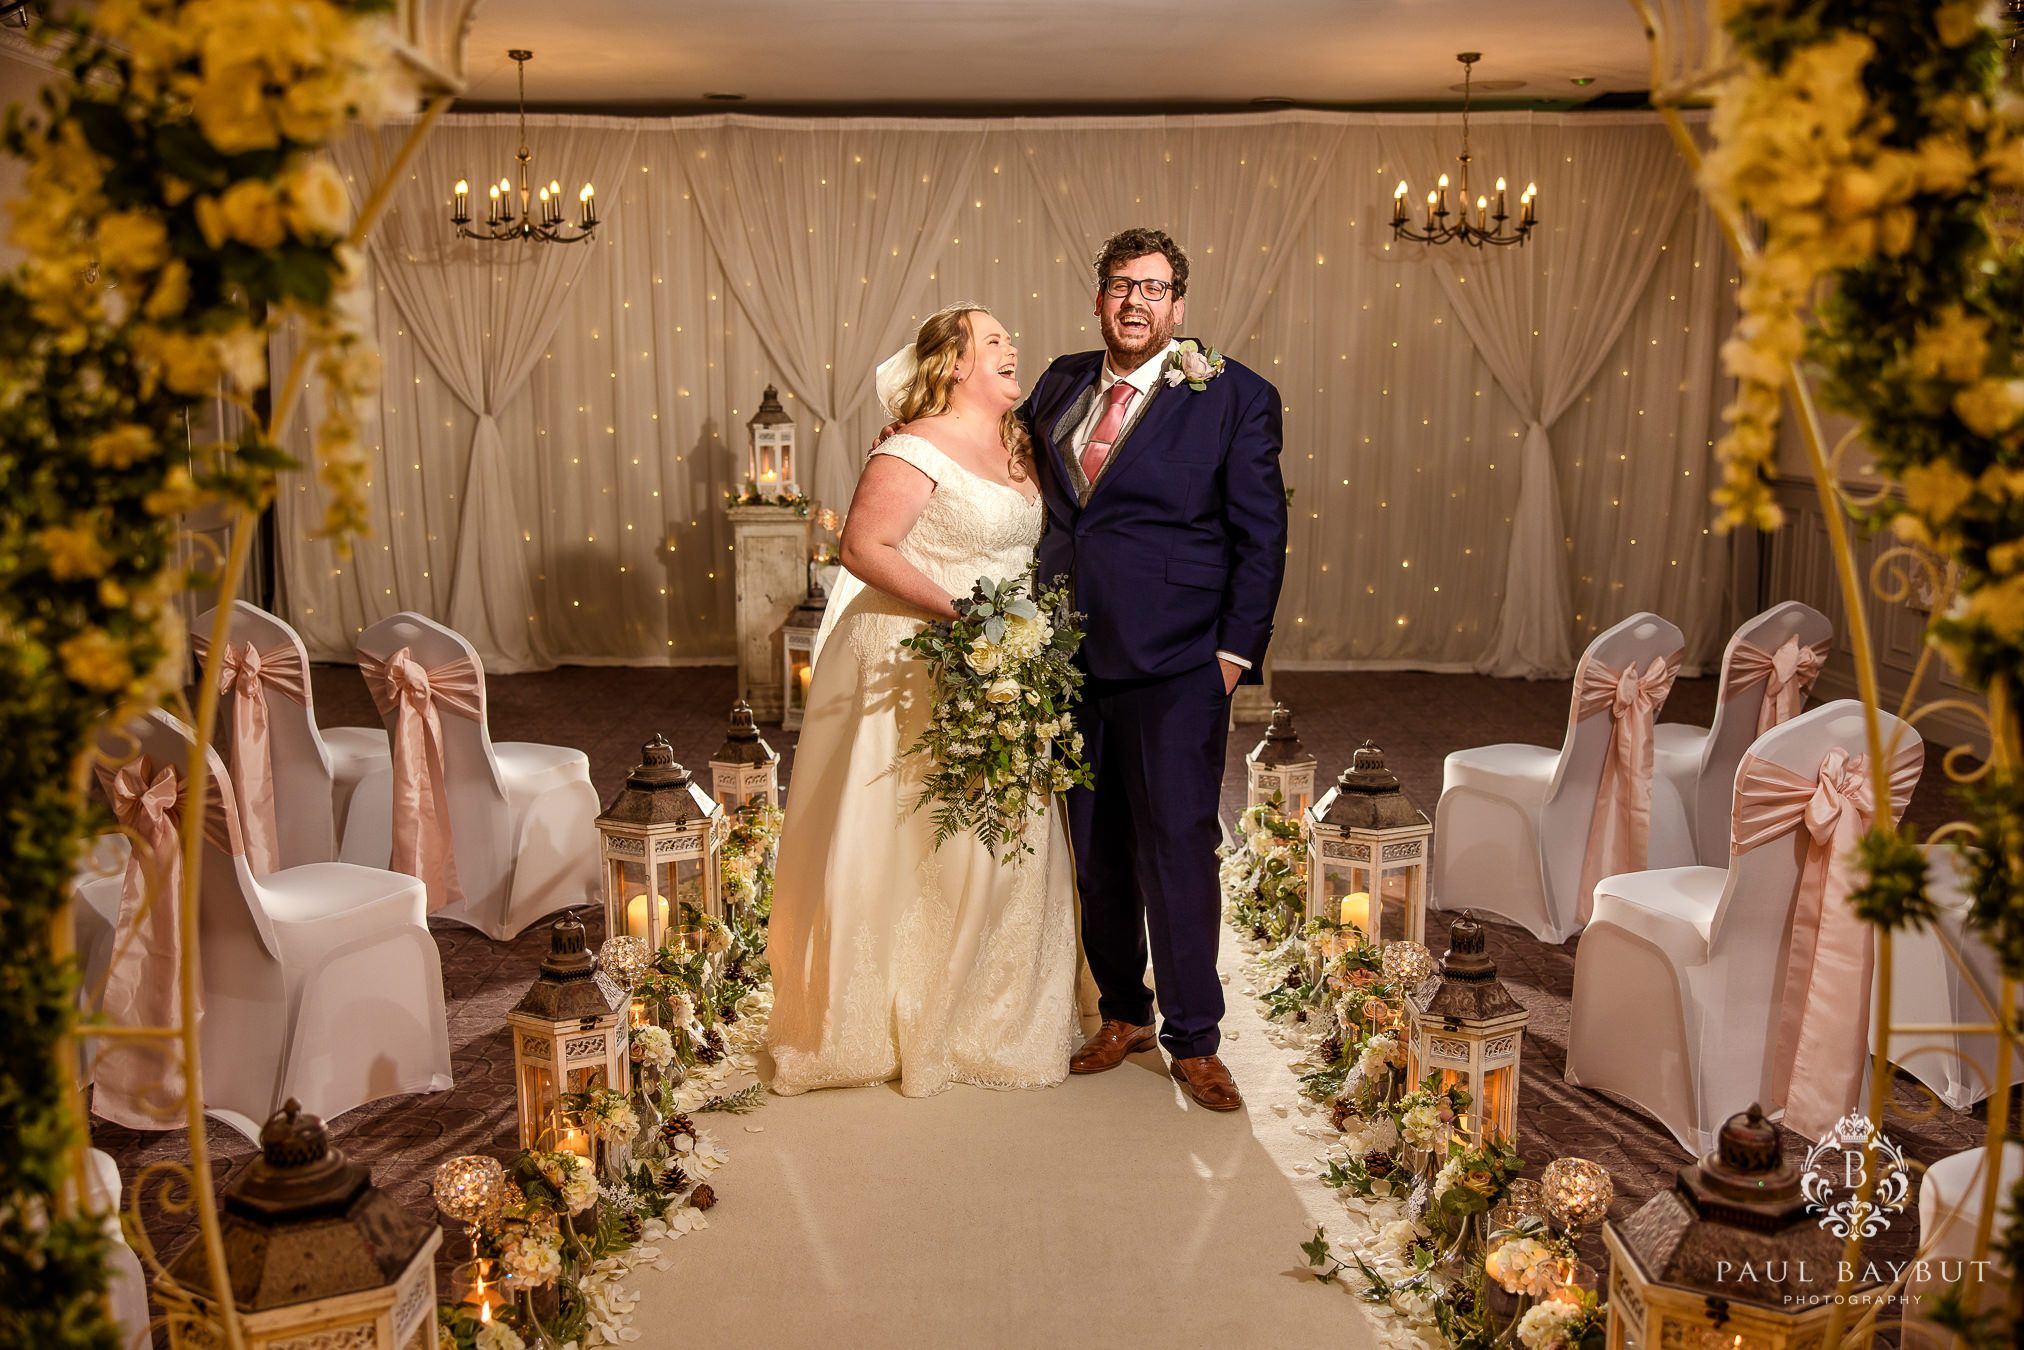 Winter wedding photography at Mottram Hall of bride and groom after their festive ceremony